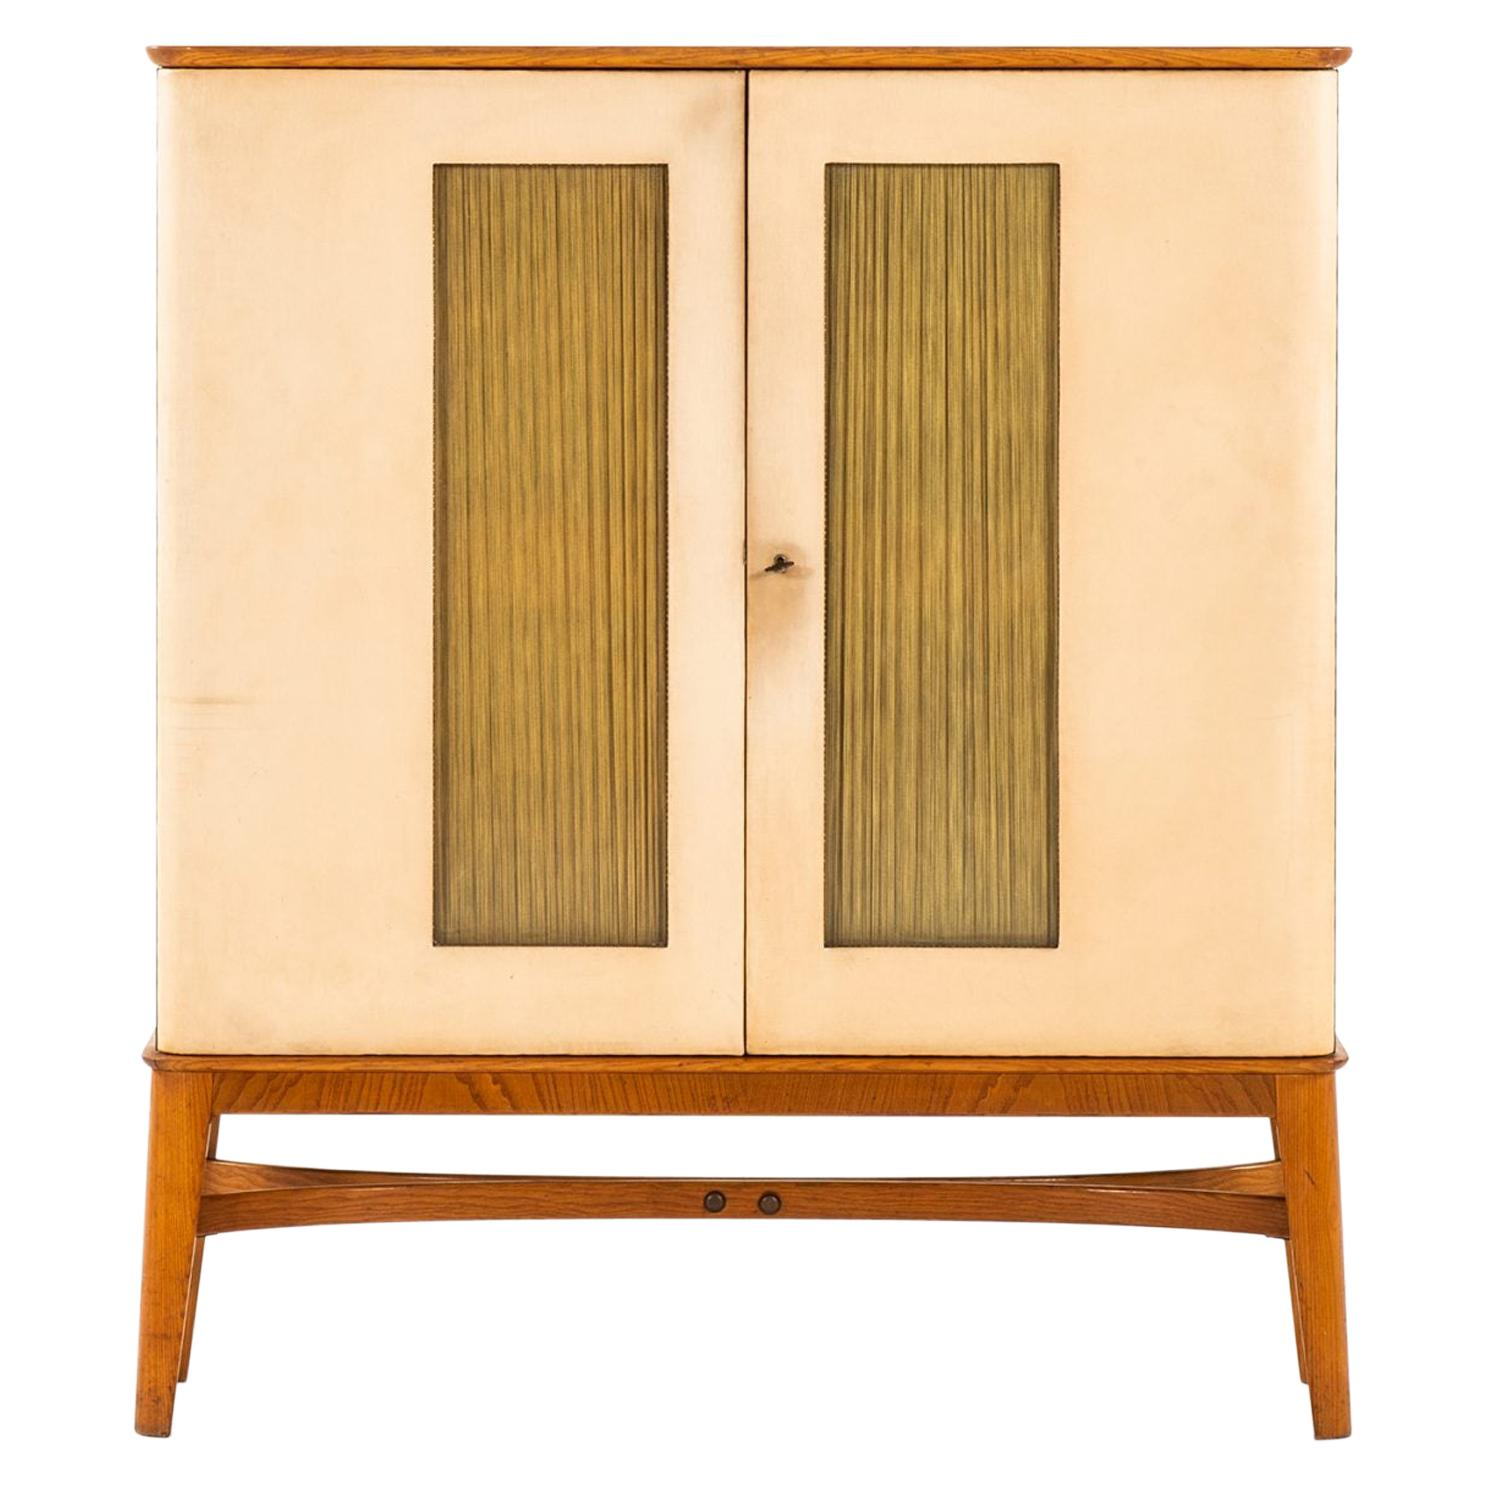 Otto Schulz Cabinet Produced by Boet in Sweden